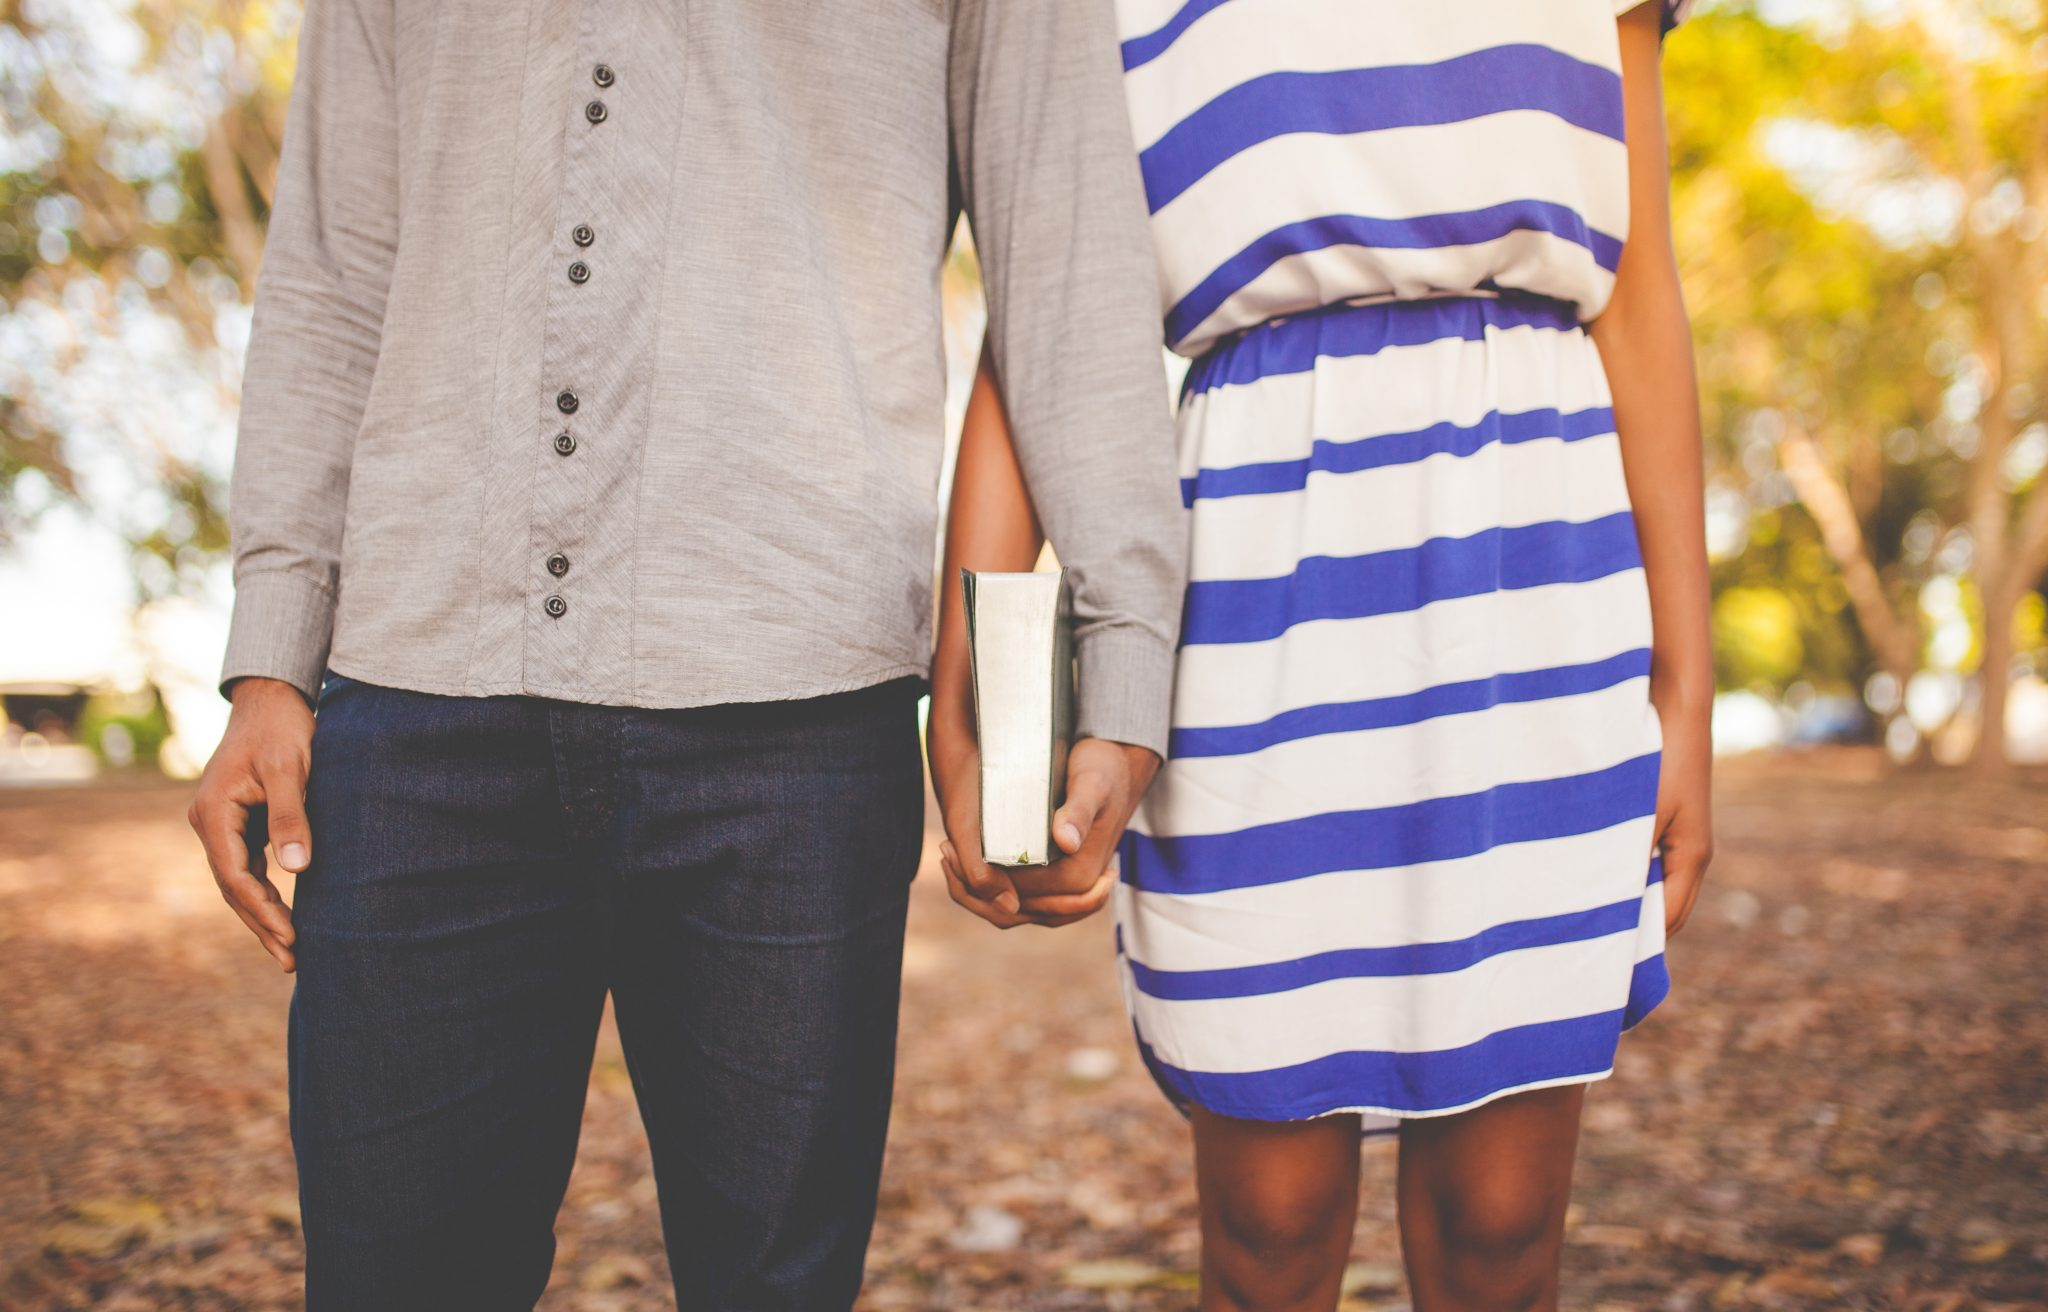 Why You Should Choose Someone Who Is Pursuing God